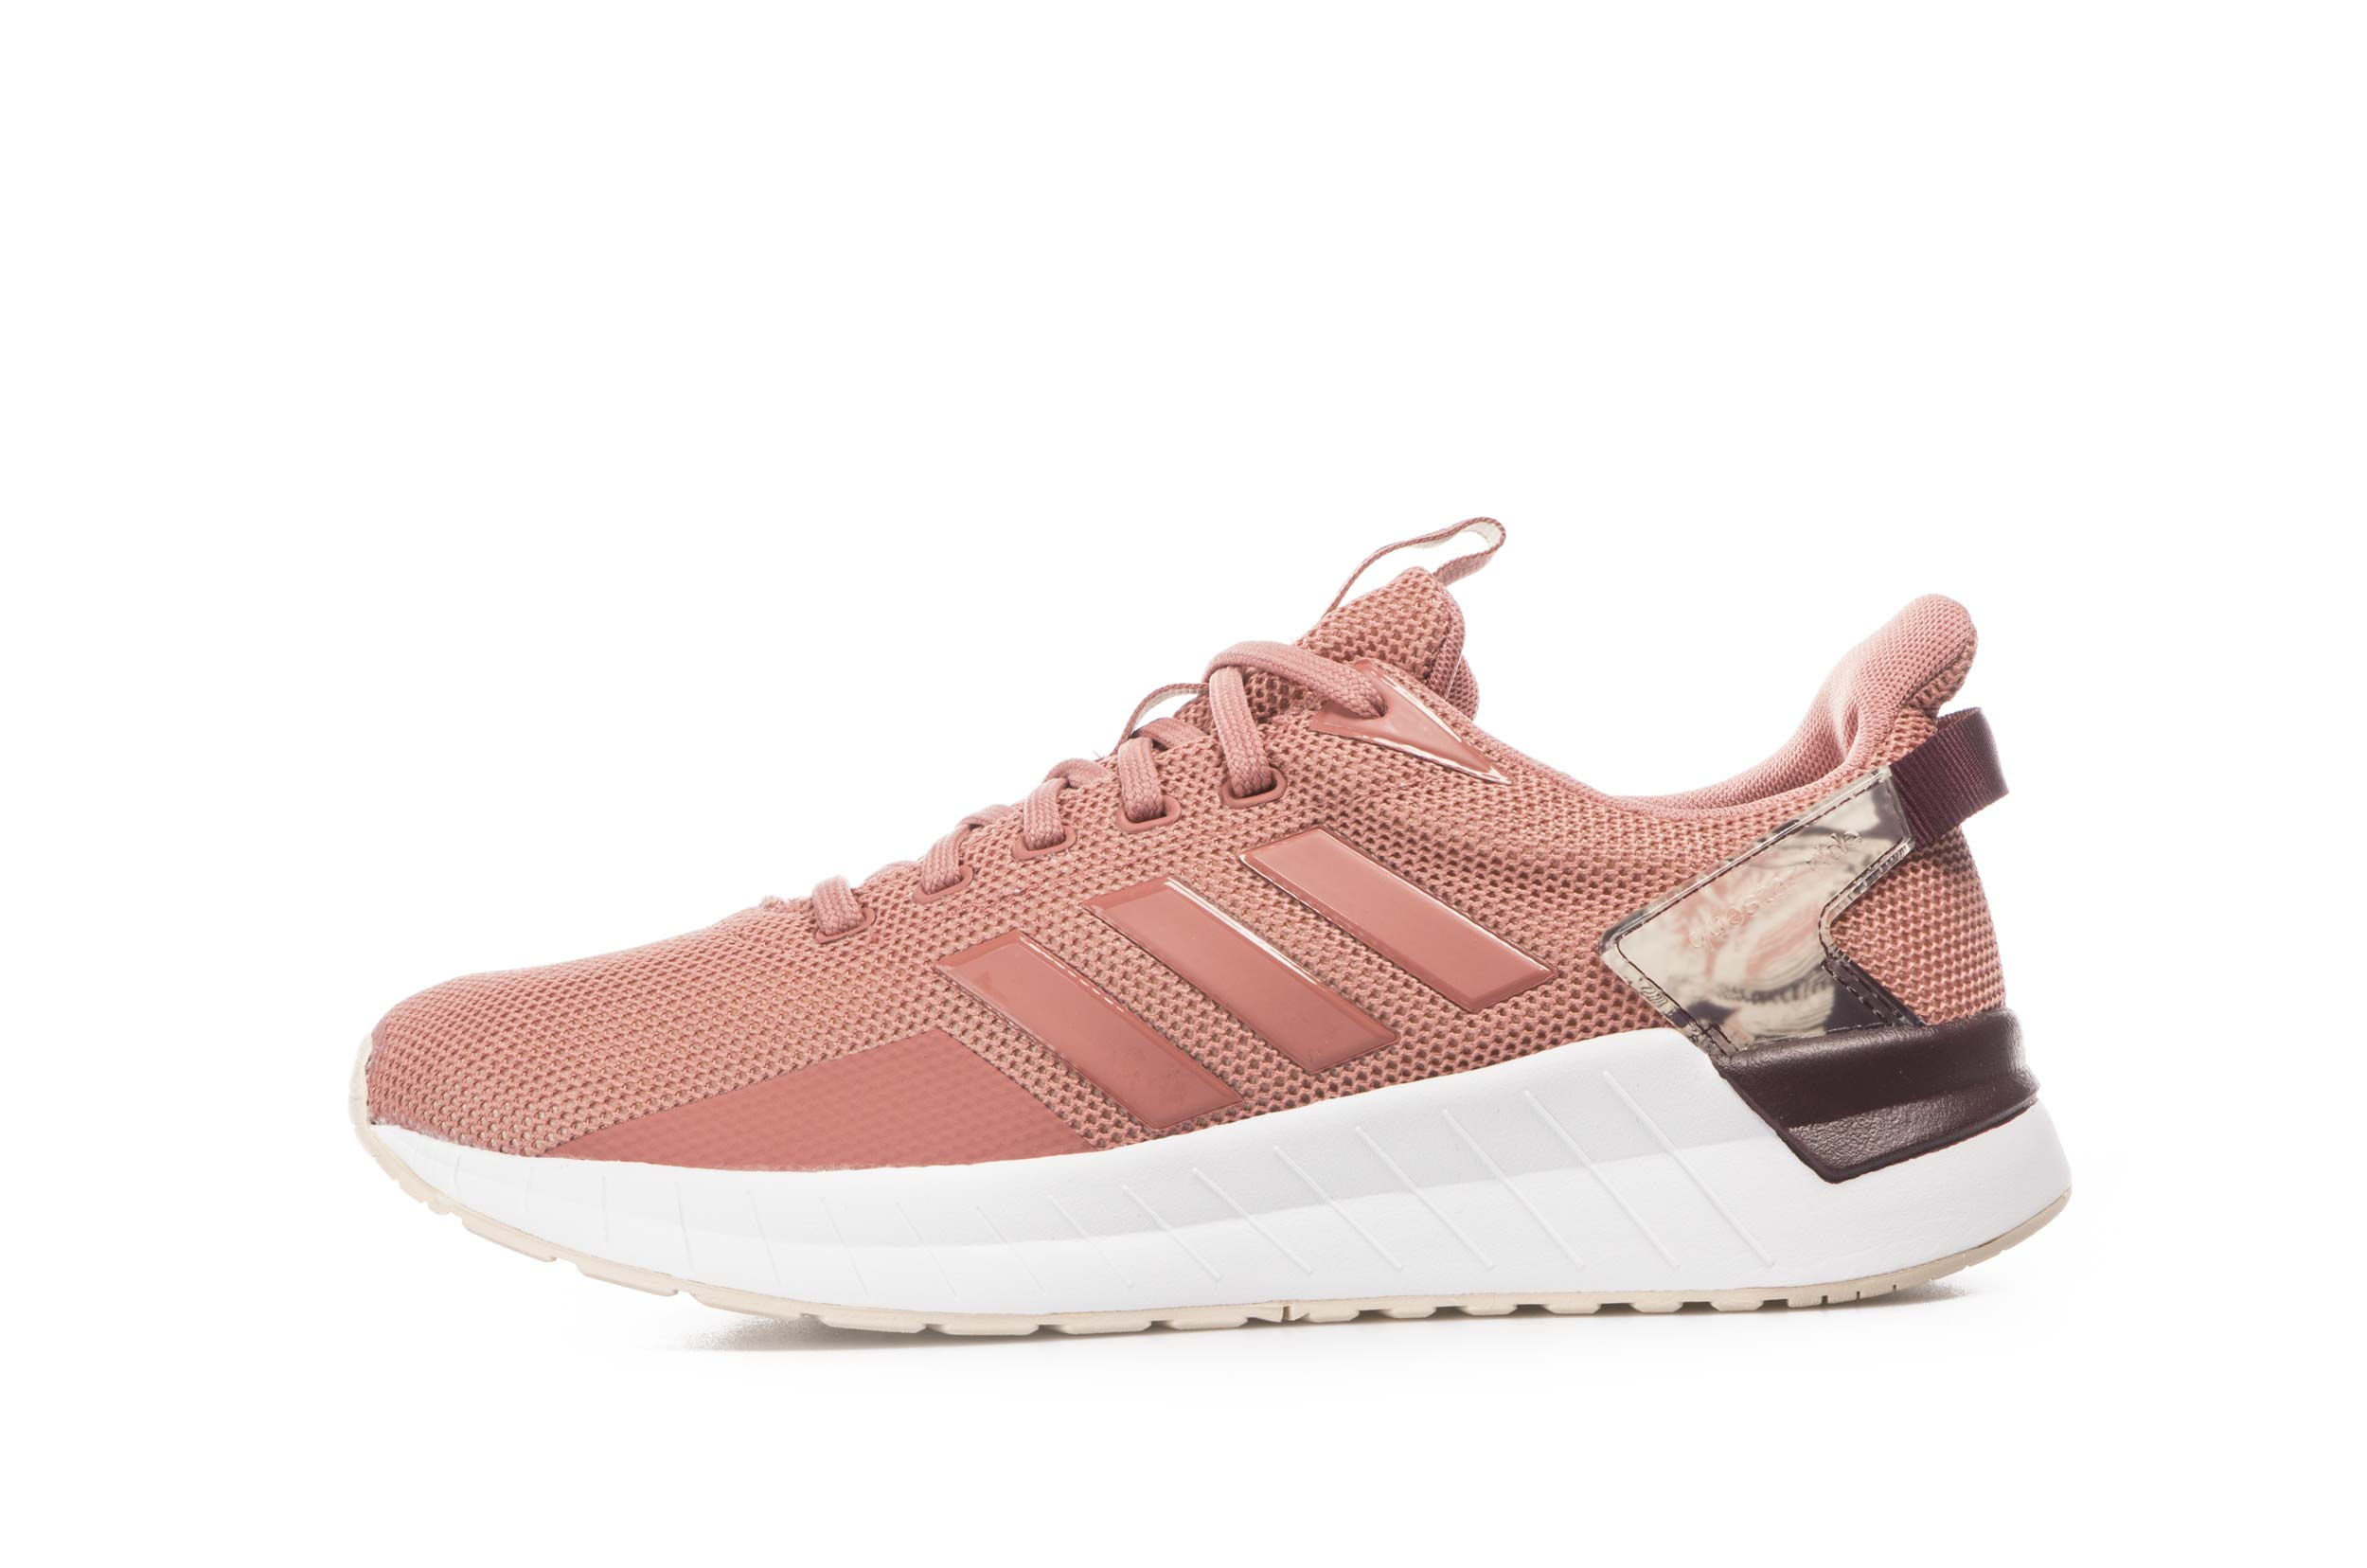 adidas Performance QUESTAR RIDE EE8377 Σομόν